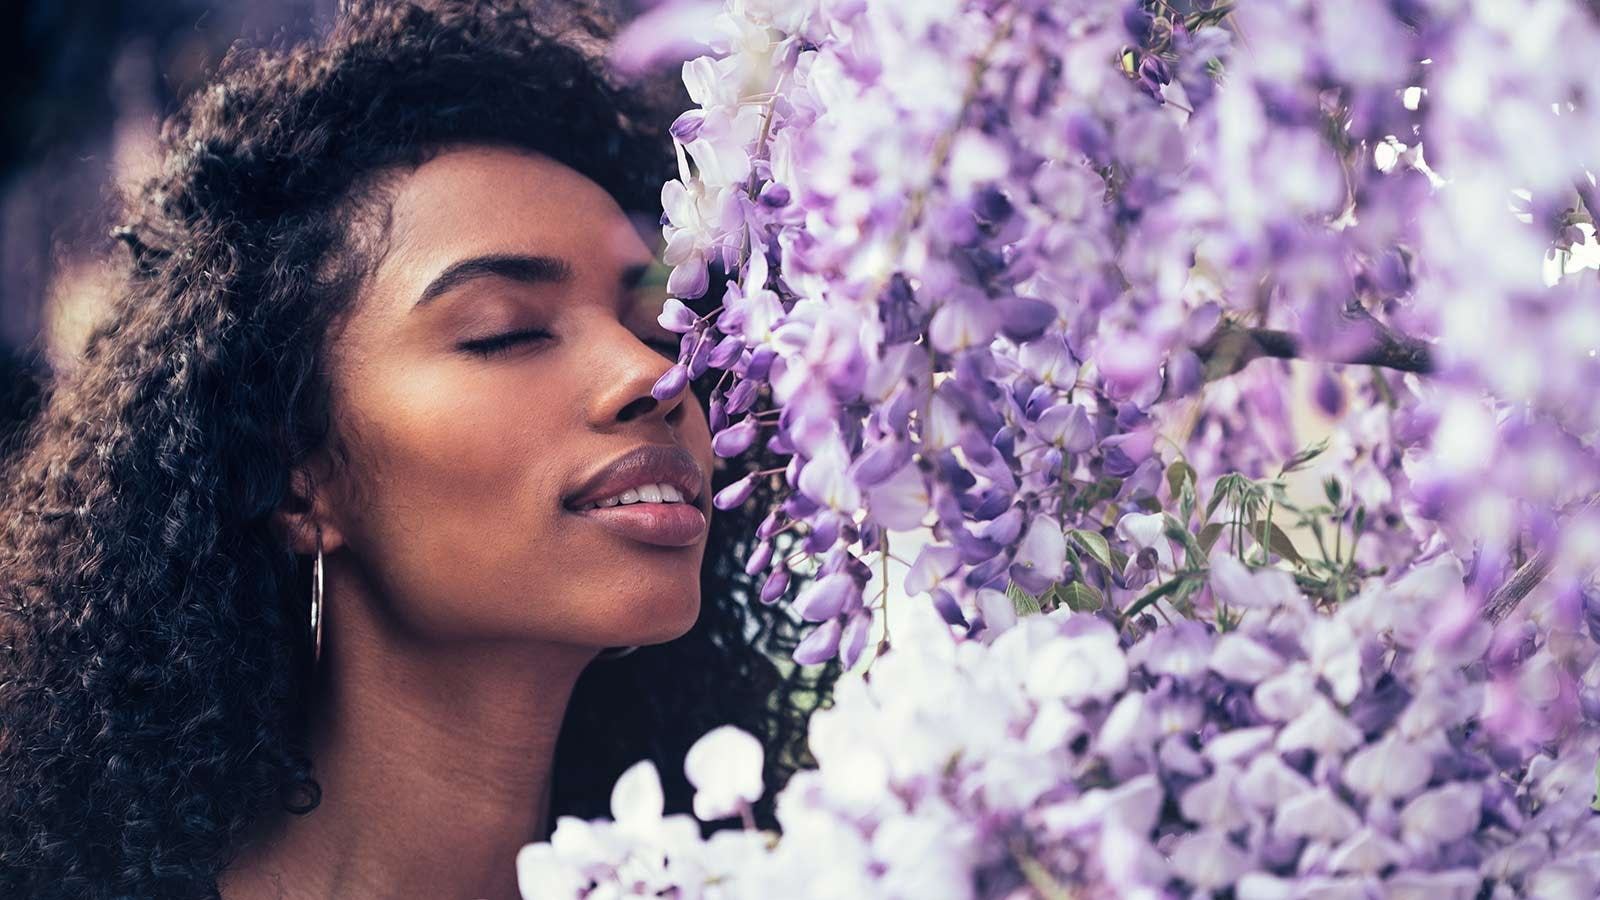 A woman smelling flowers.